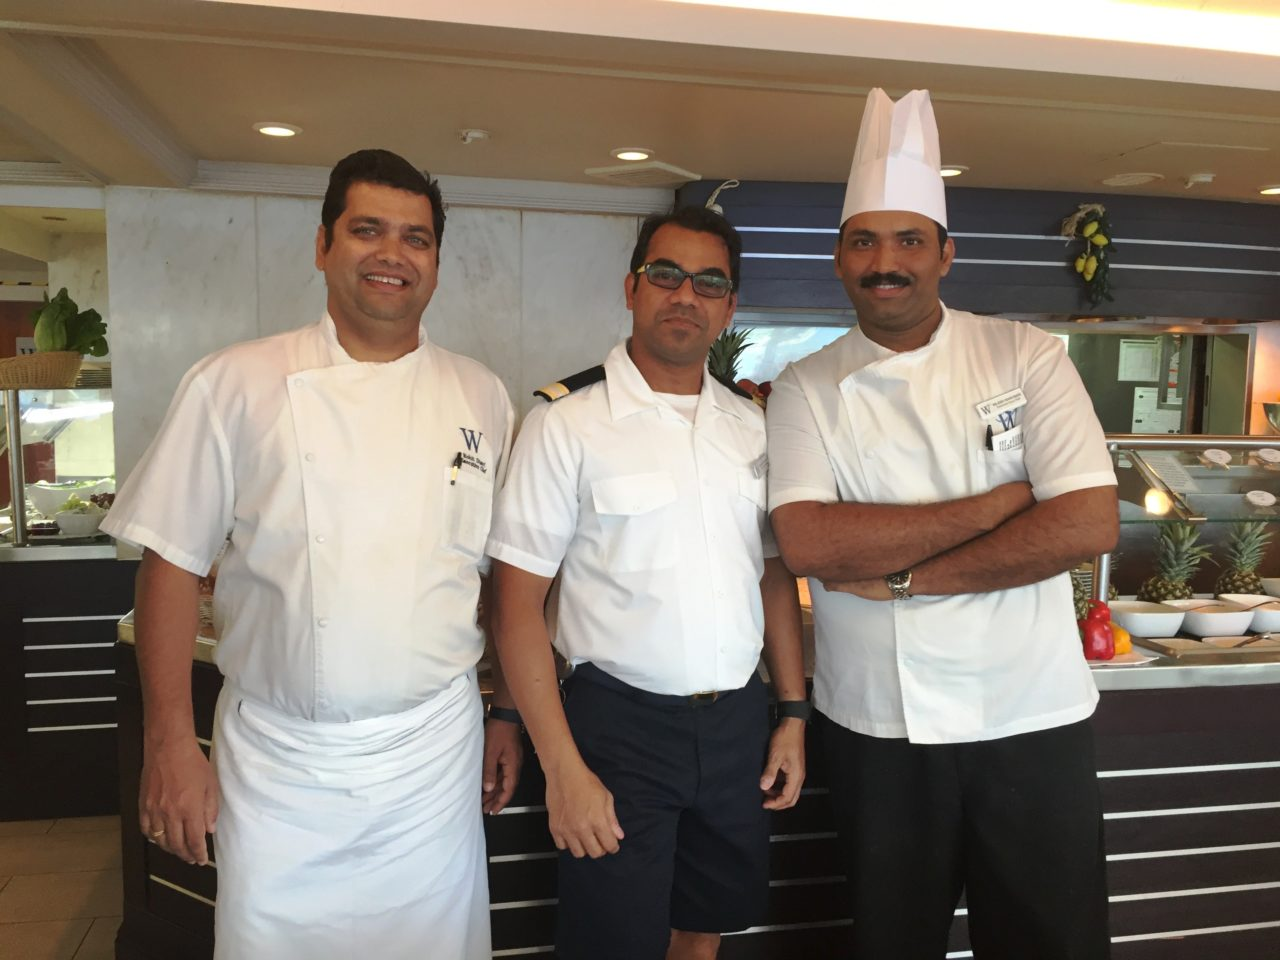 Windstar Cruises ~ the talented trio of Executive Chef Ronit, Restaurant Manager Merrick, and Executive Sous-Chef Nilesh